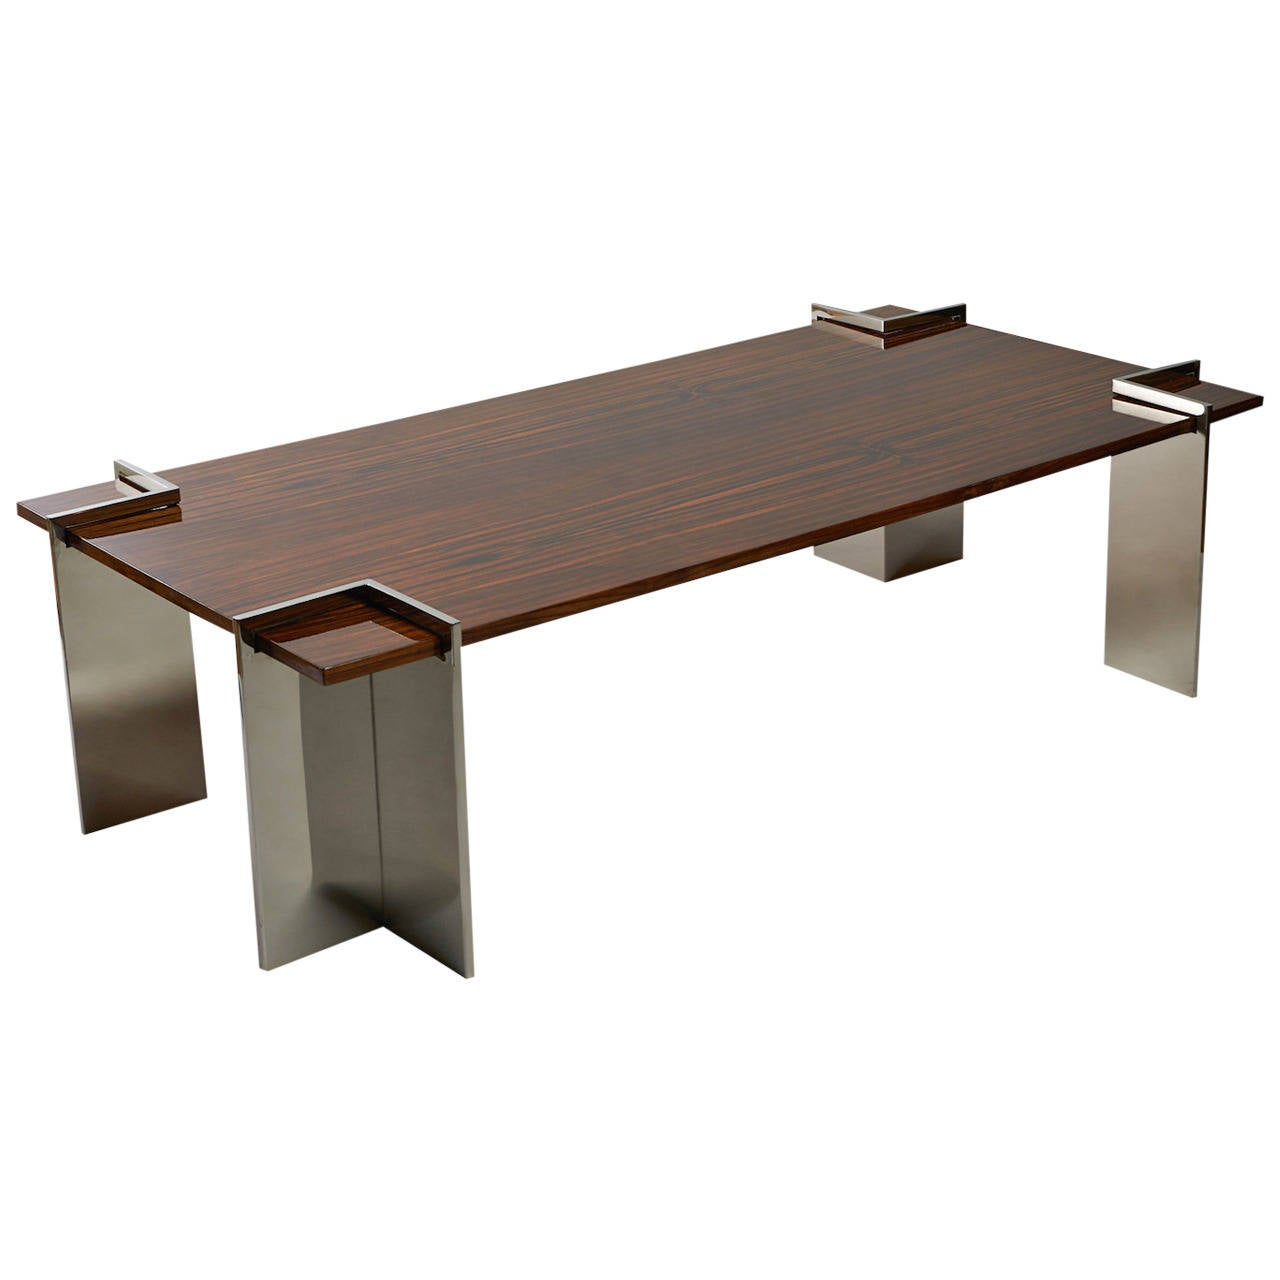 Leon Rosen Rosewood Coffee Table For Sale At 1stdibs